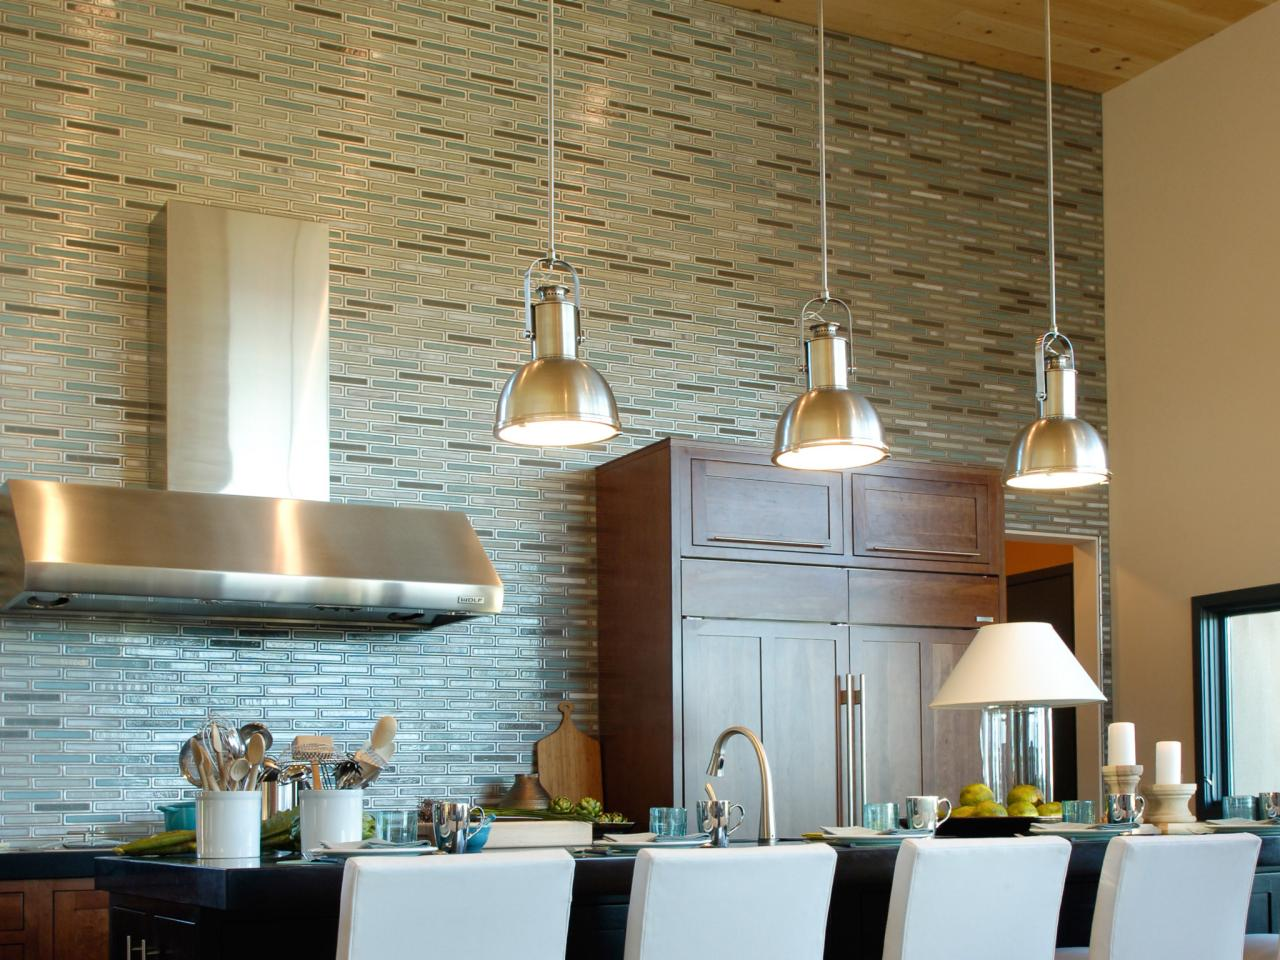 Good Kitchen Tiles Backsplash Ideas Part - 9: Kitchen-backsplash-tile-ideas_4x3